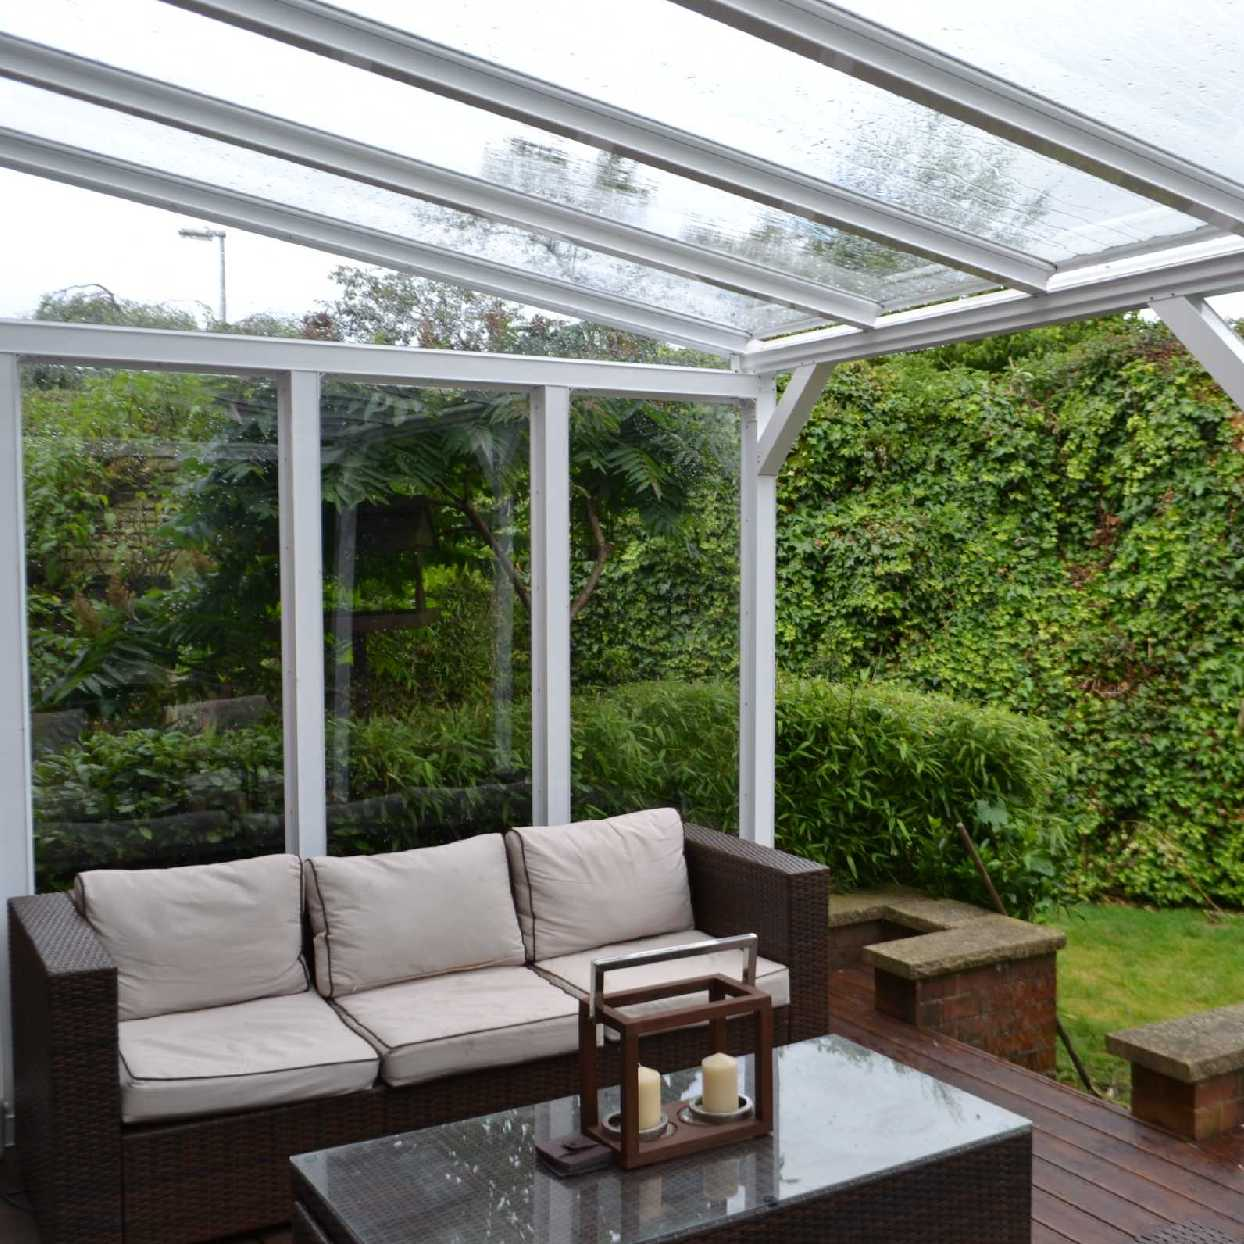 Omega Smart White Lean-To Canopy with 6mm Glass Clear Plate Polycarbonate Glazing - 2.1m (W) x 3.5m (P), (2) Supporting Posts